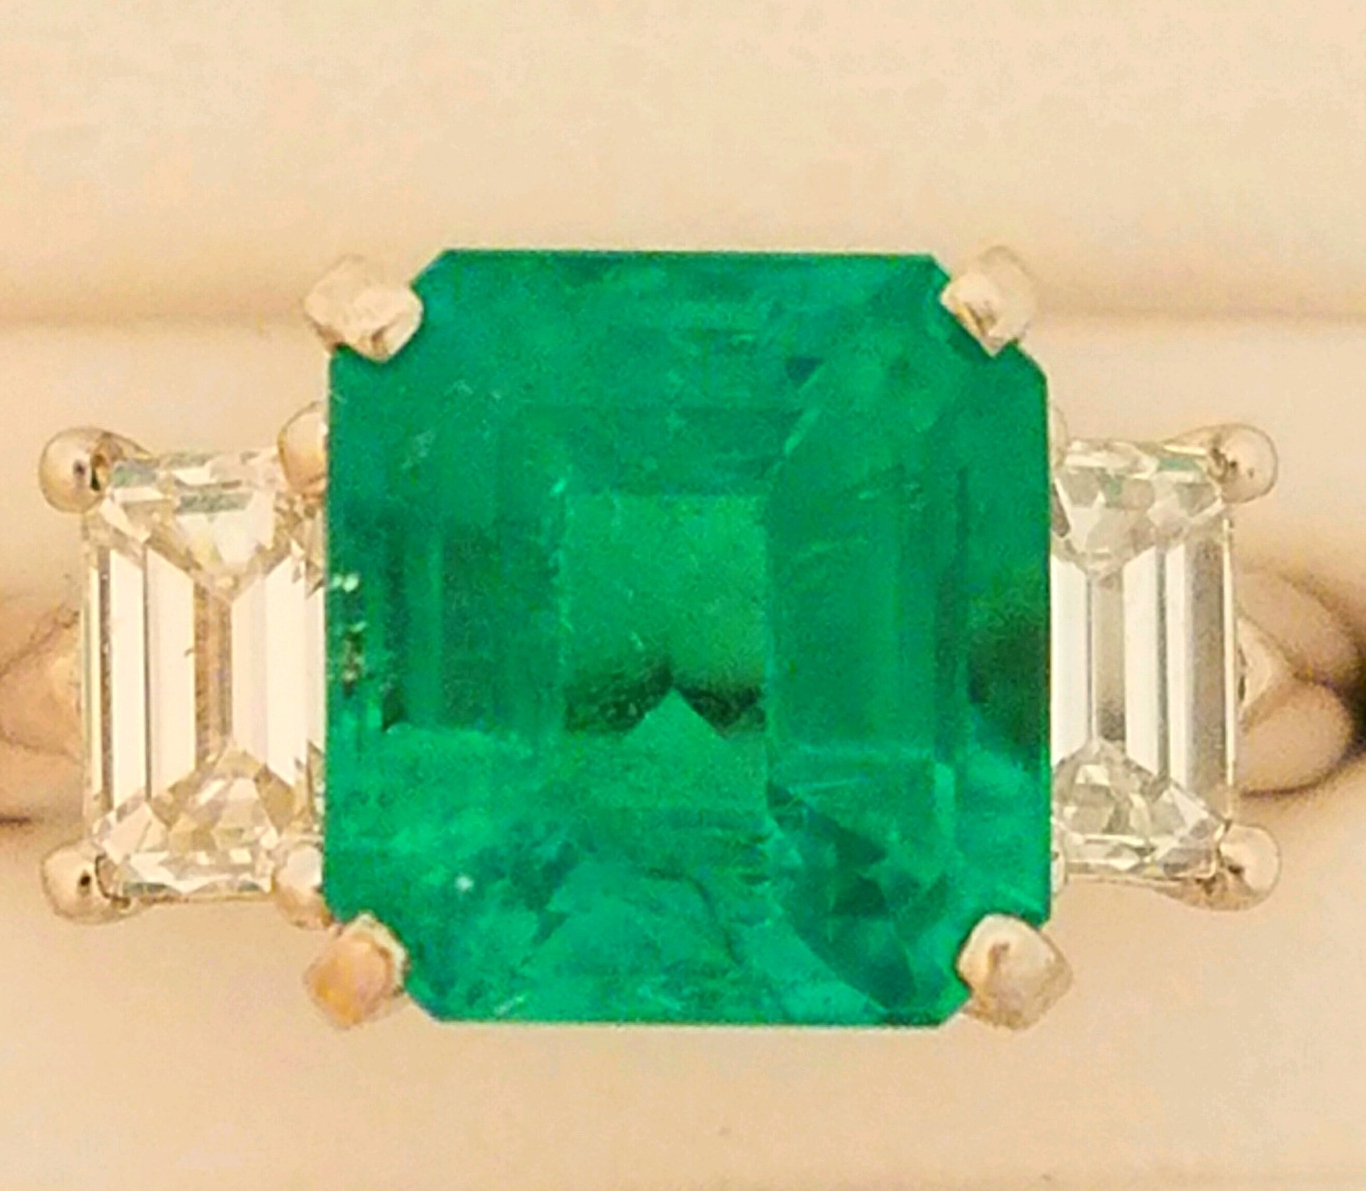 An emerald pendant makes a lovely gift for someone with a May birthday!